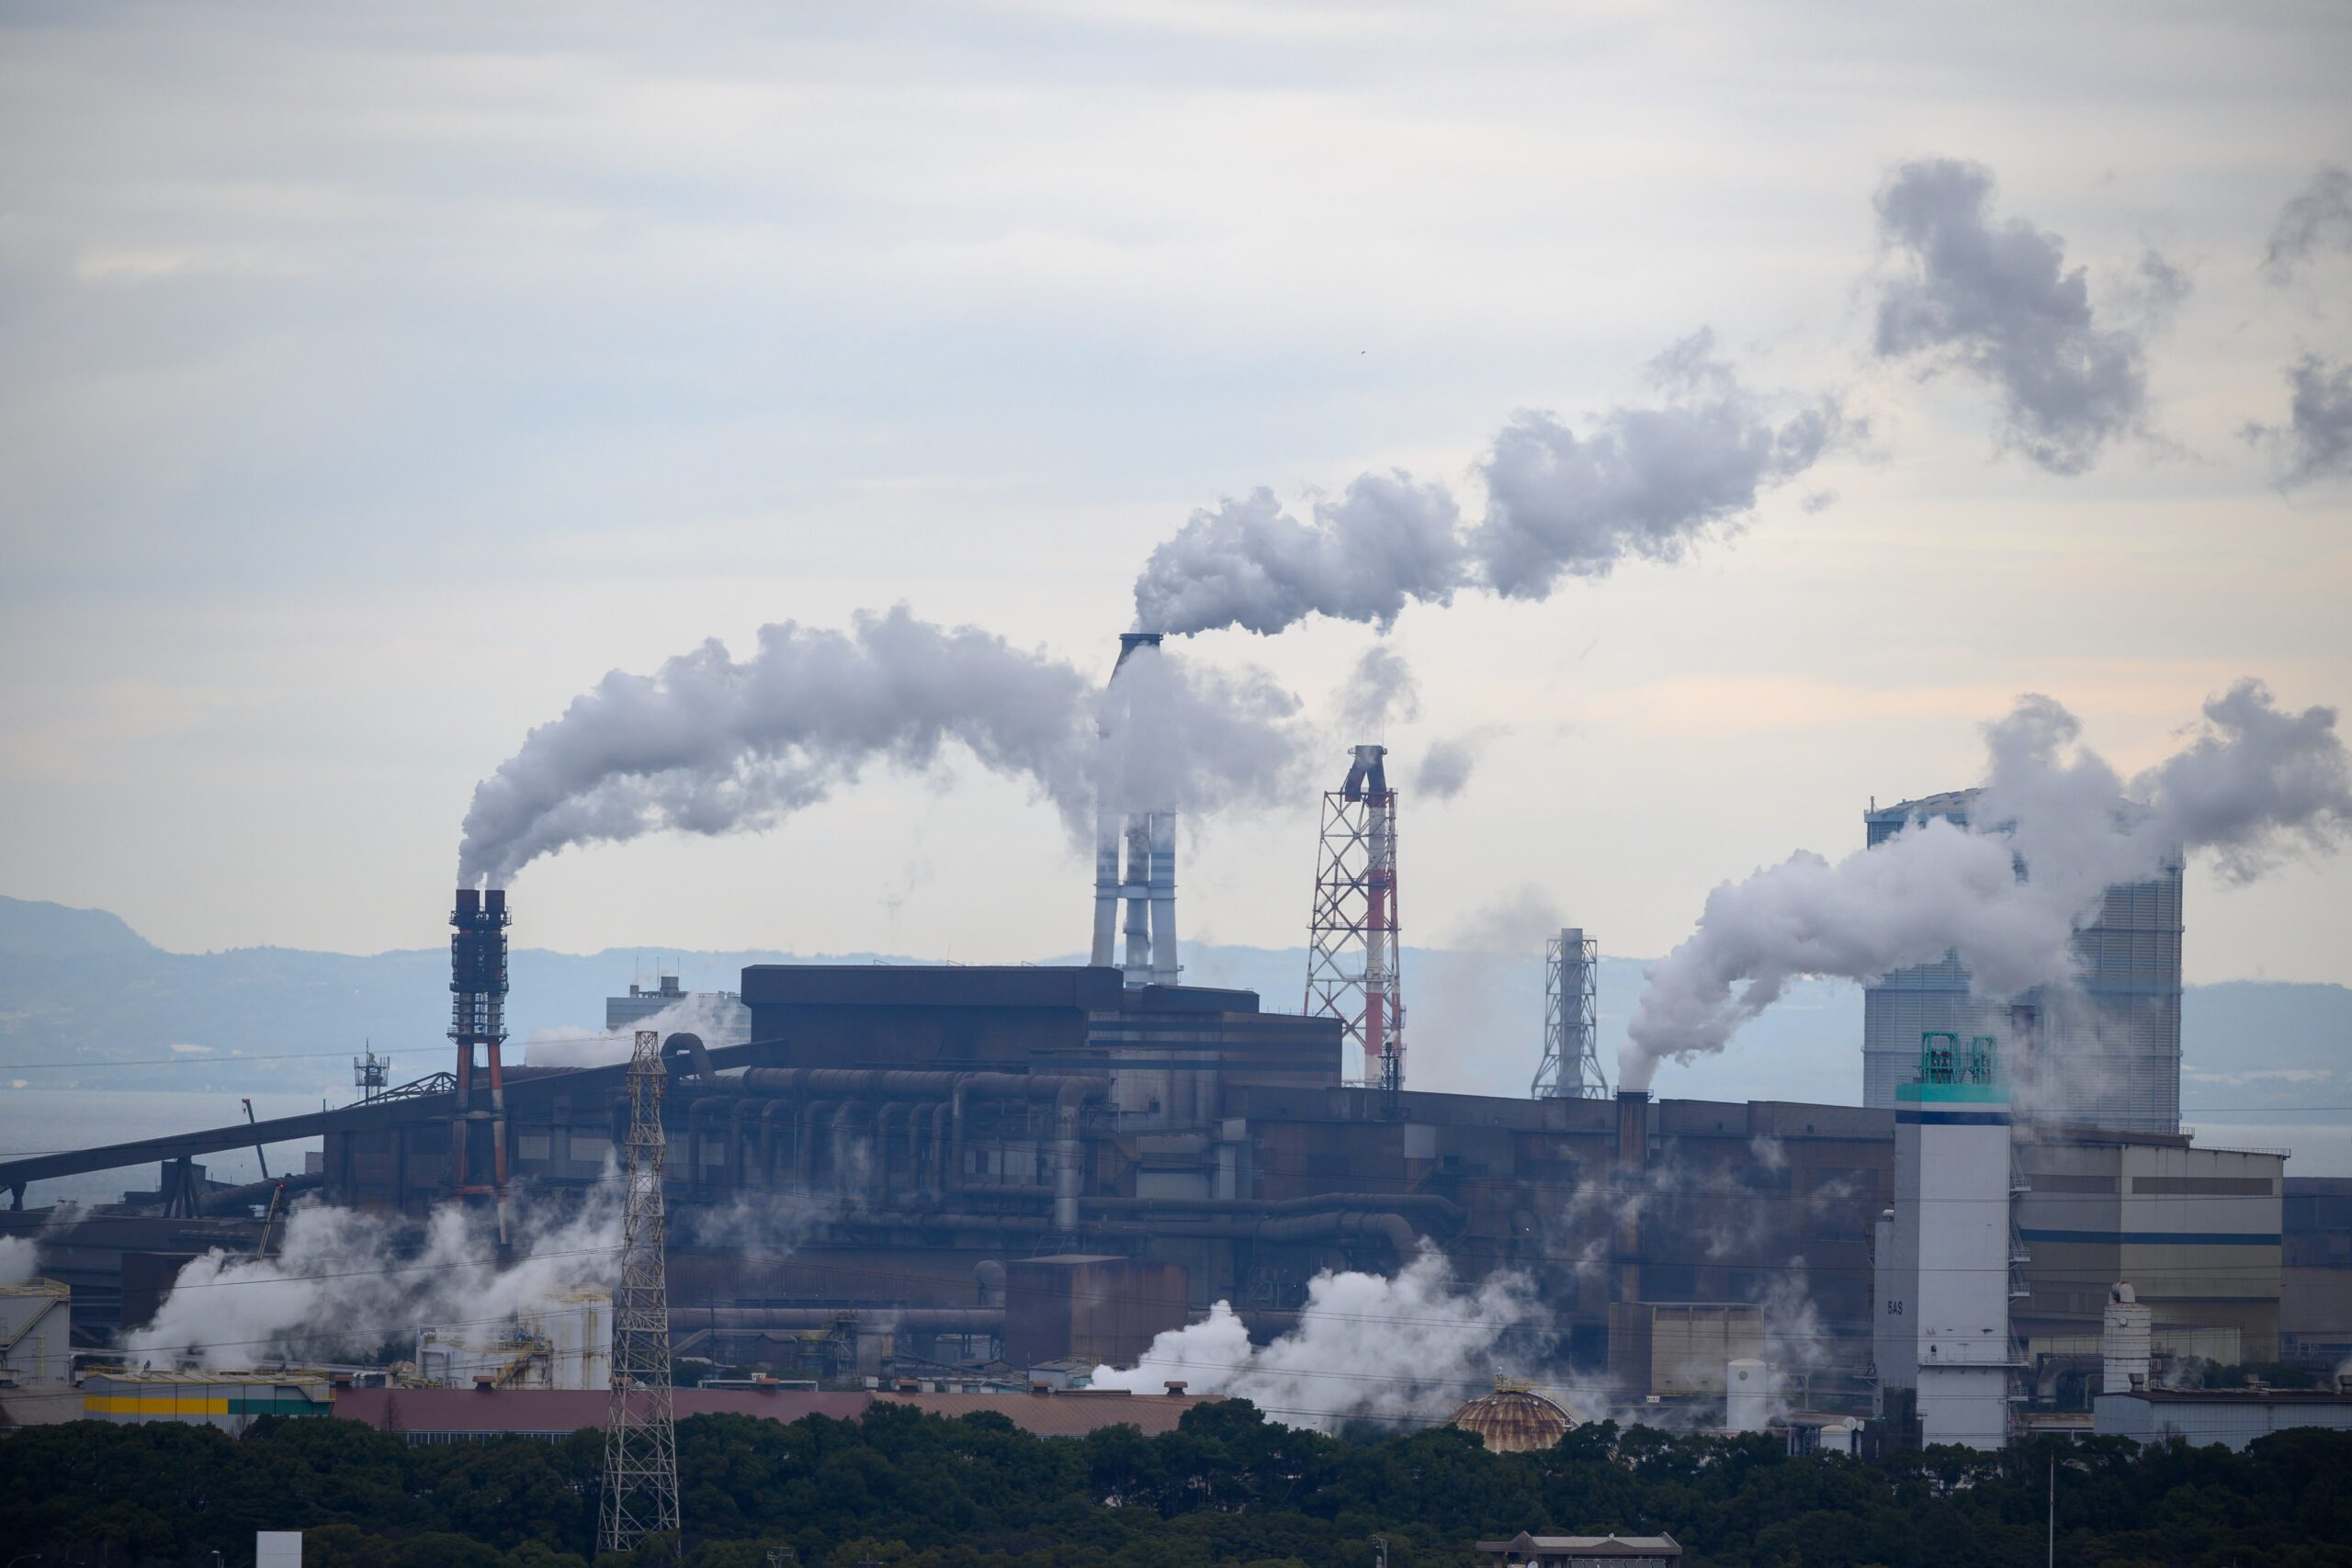 Leading cardiovascular organizations call for urgent action to reduce air pollution